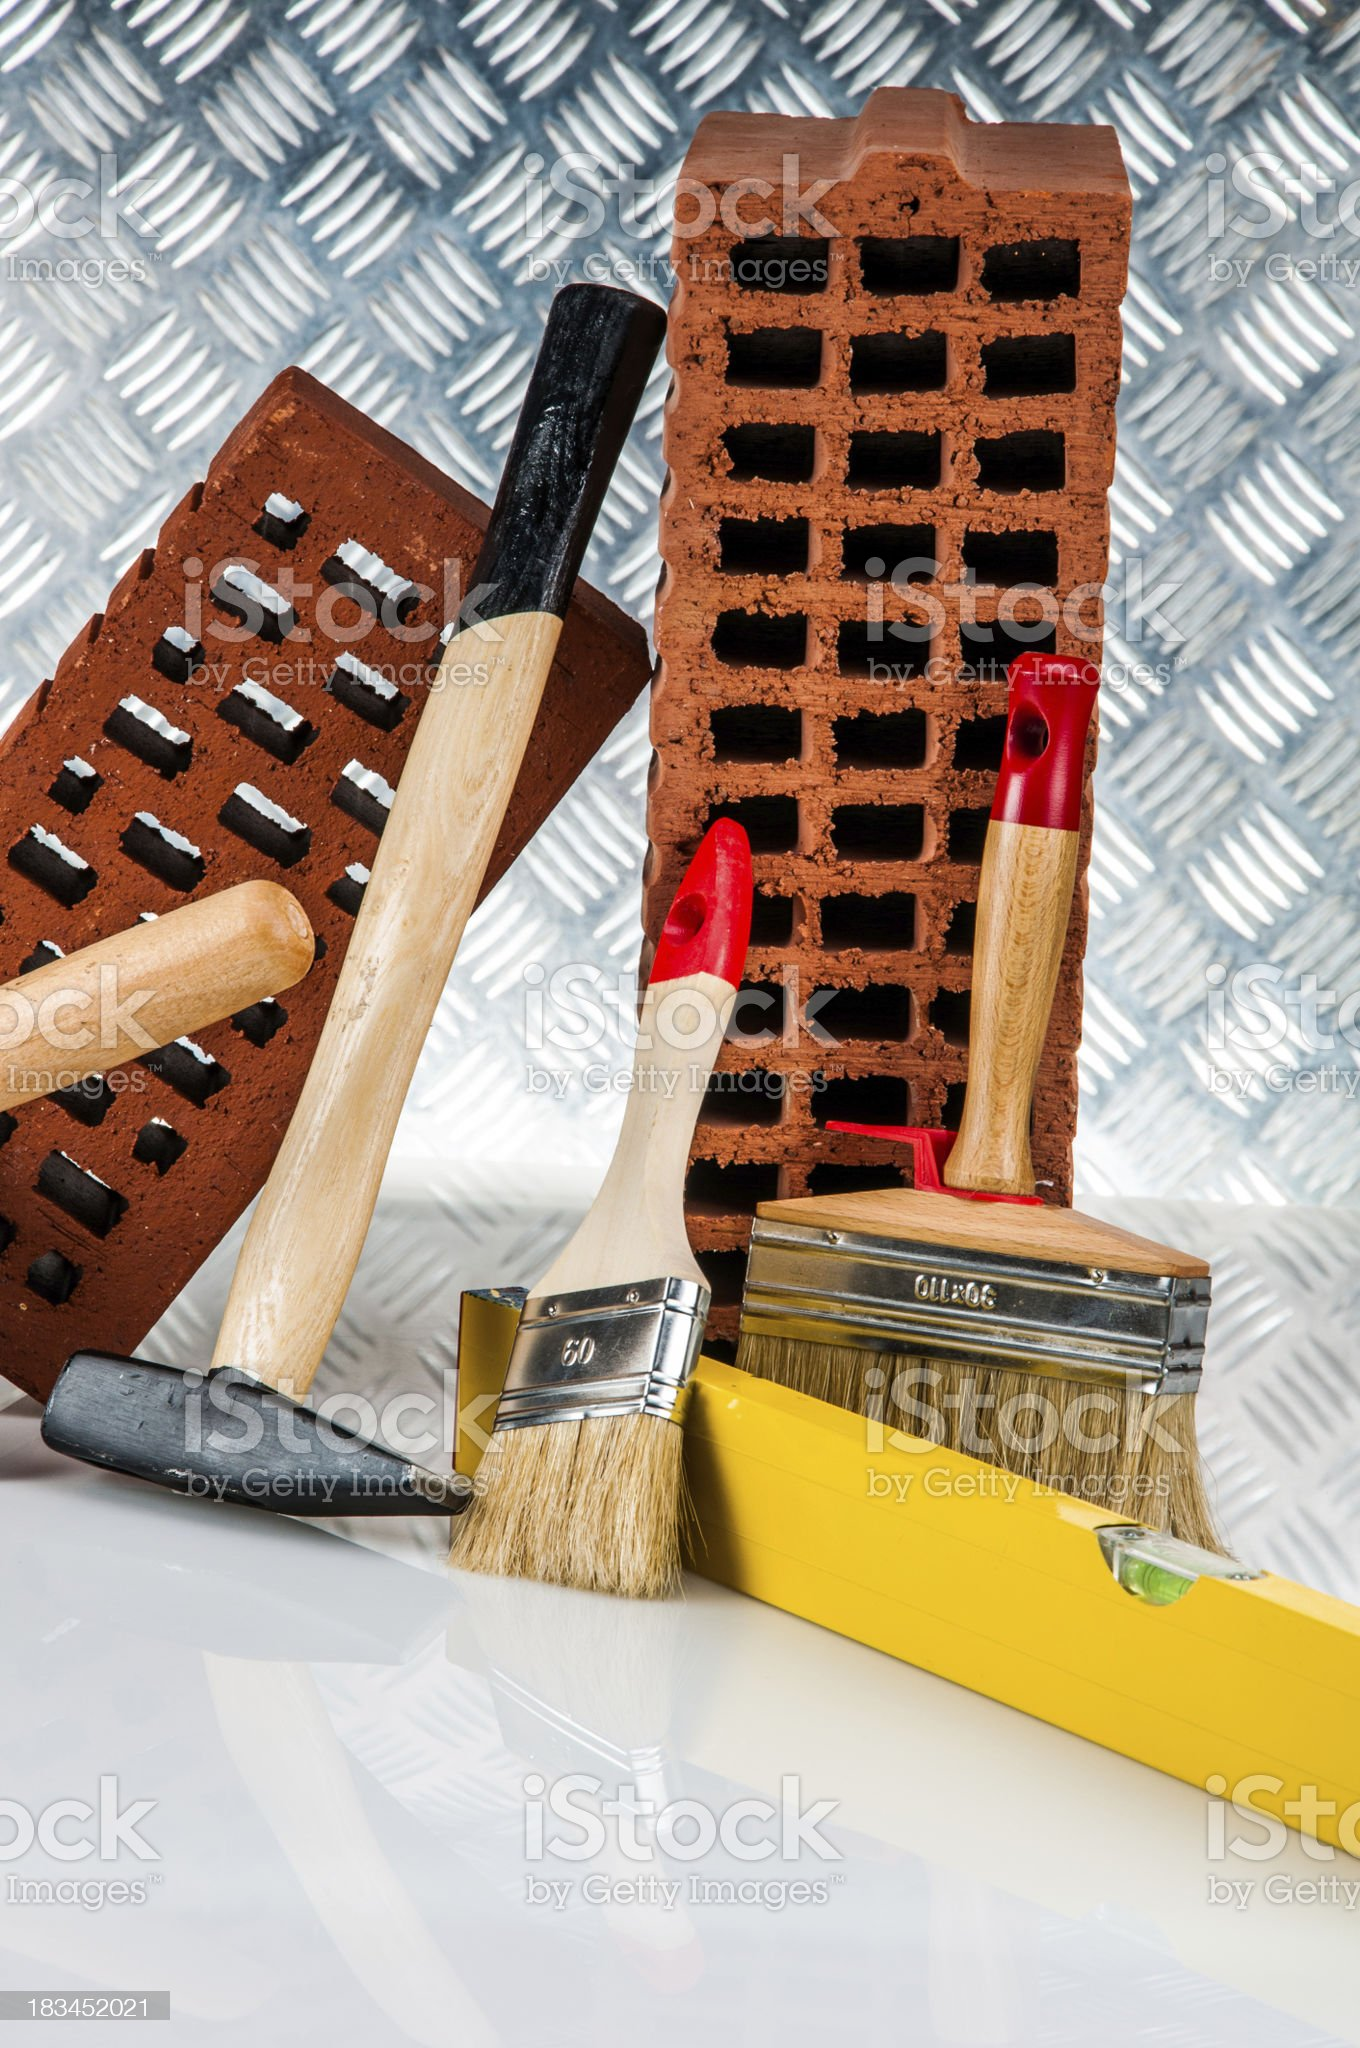 Professional building stuff, construction site objects royalty-free stock photo